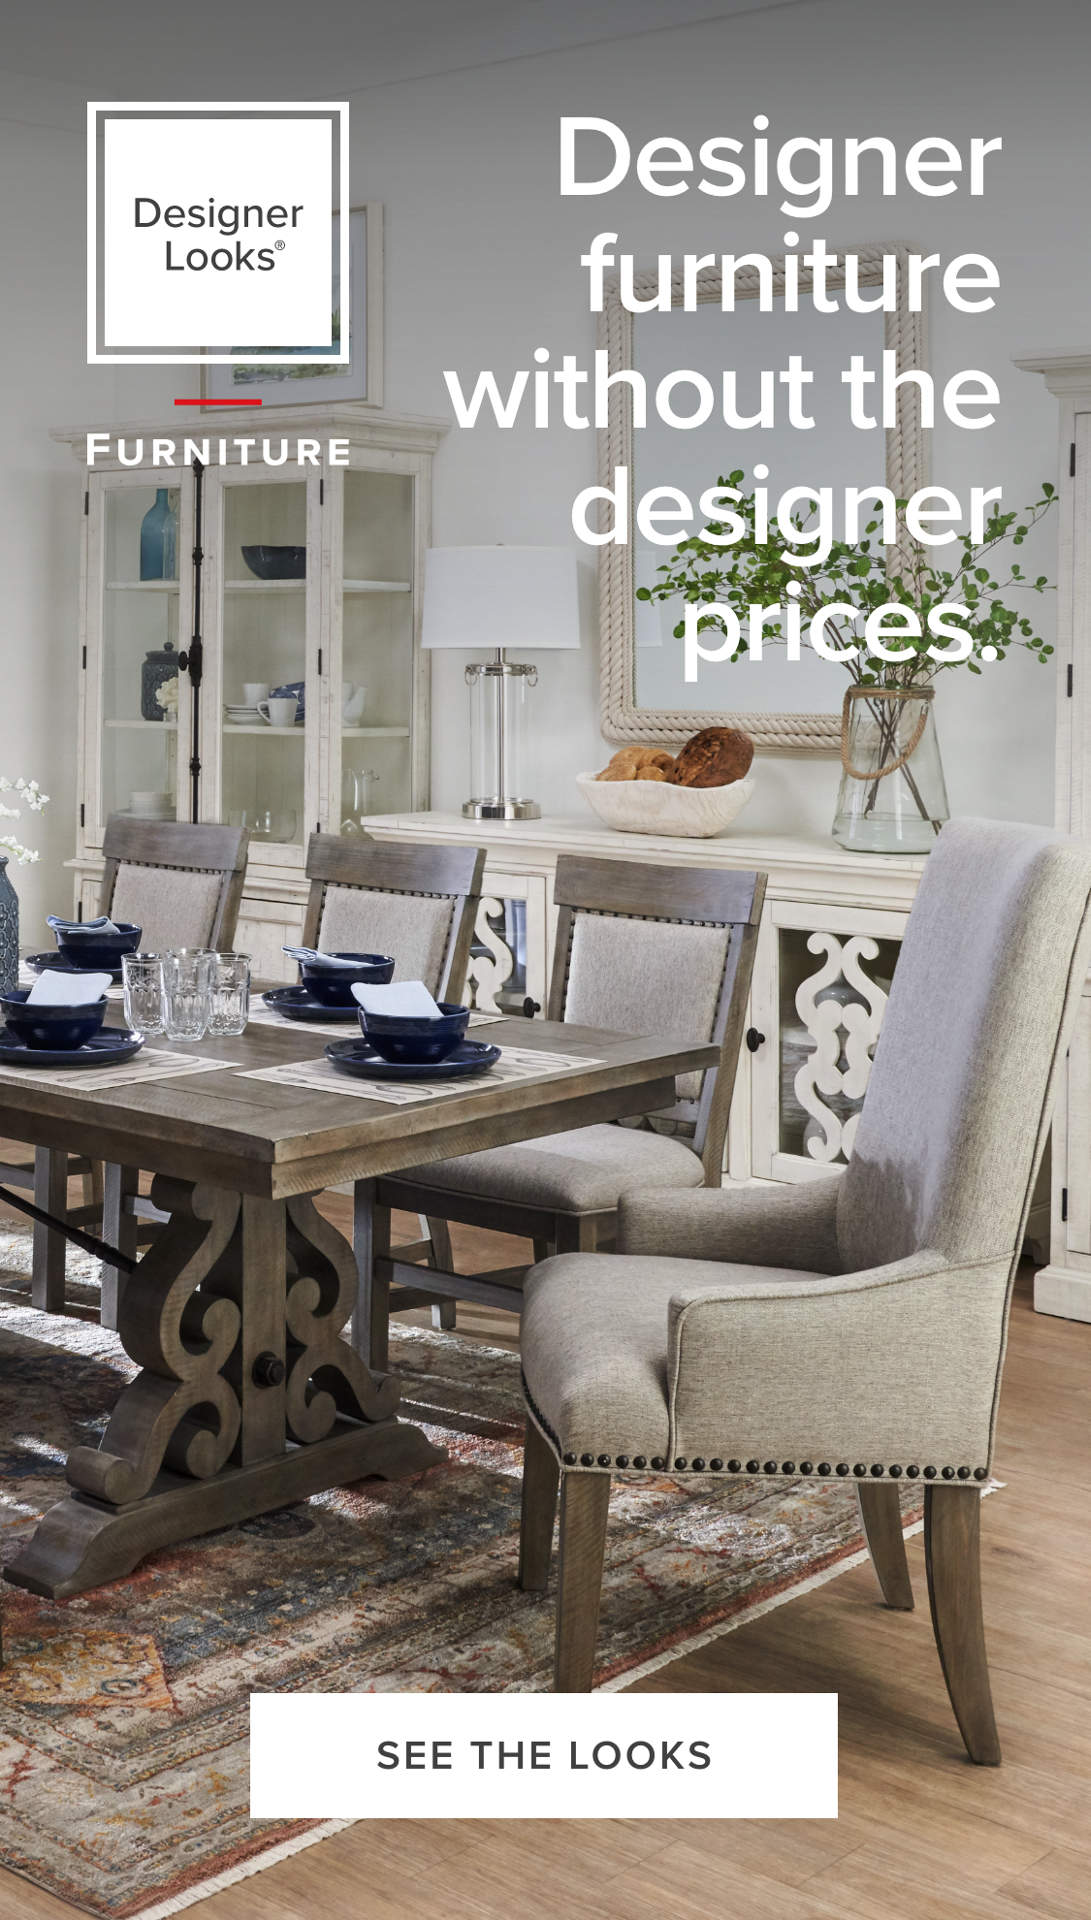 Designer dining room furniture without the designer prices.